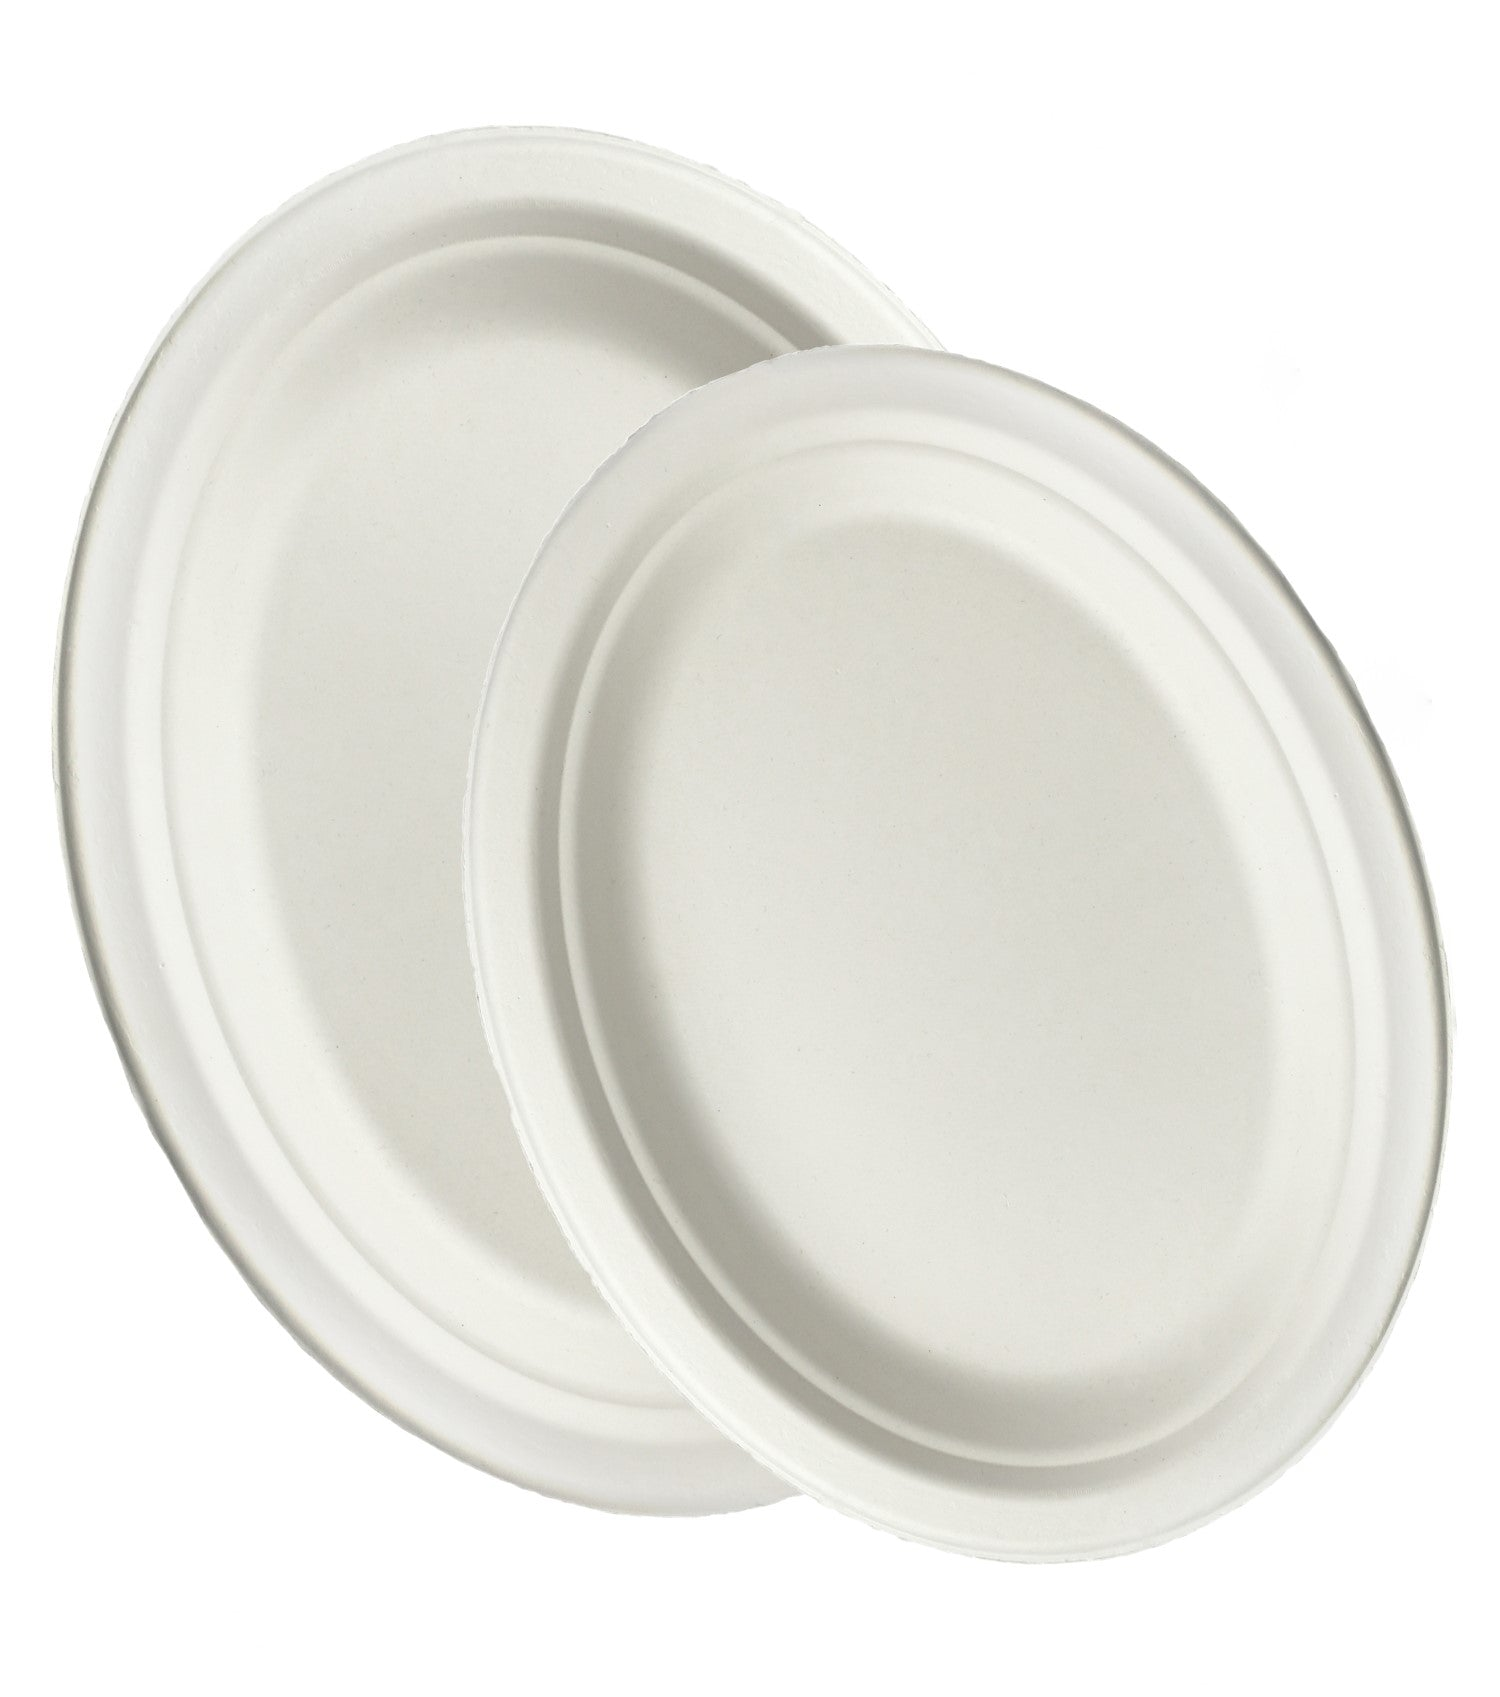 Baggase Oval Platters